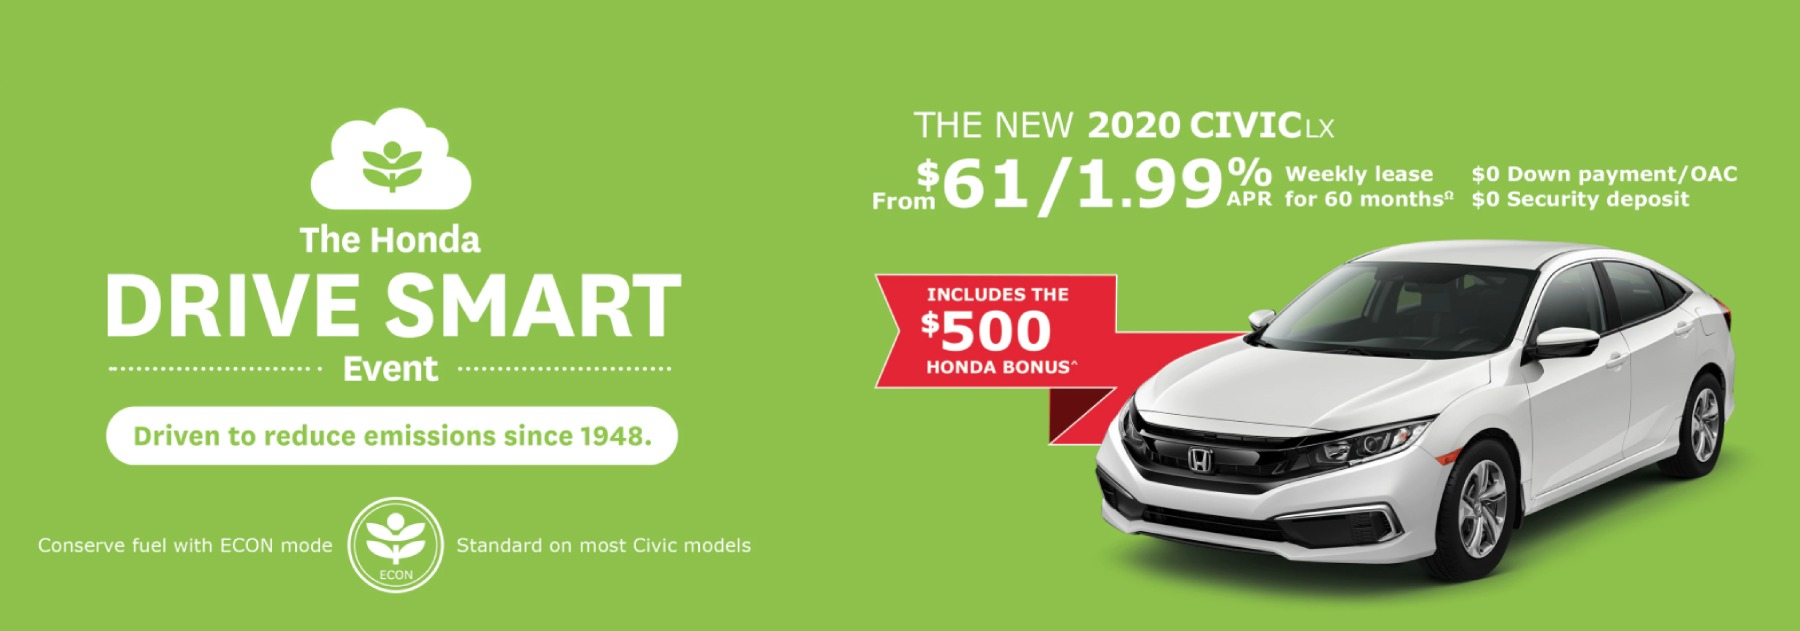 April 2020 Civic Offer